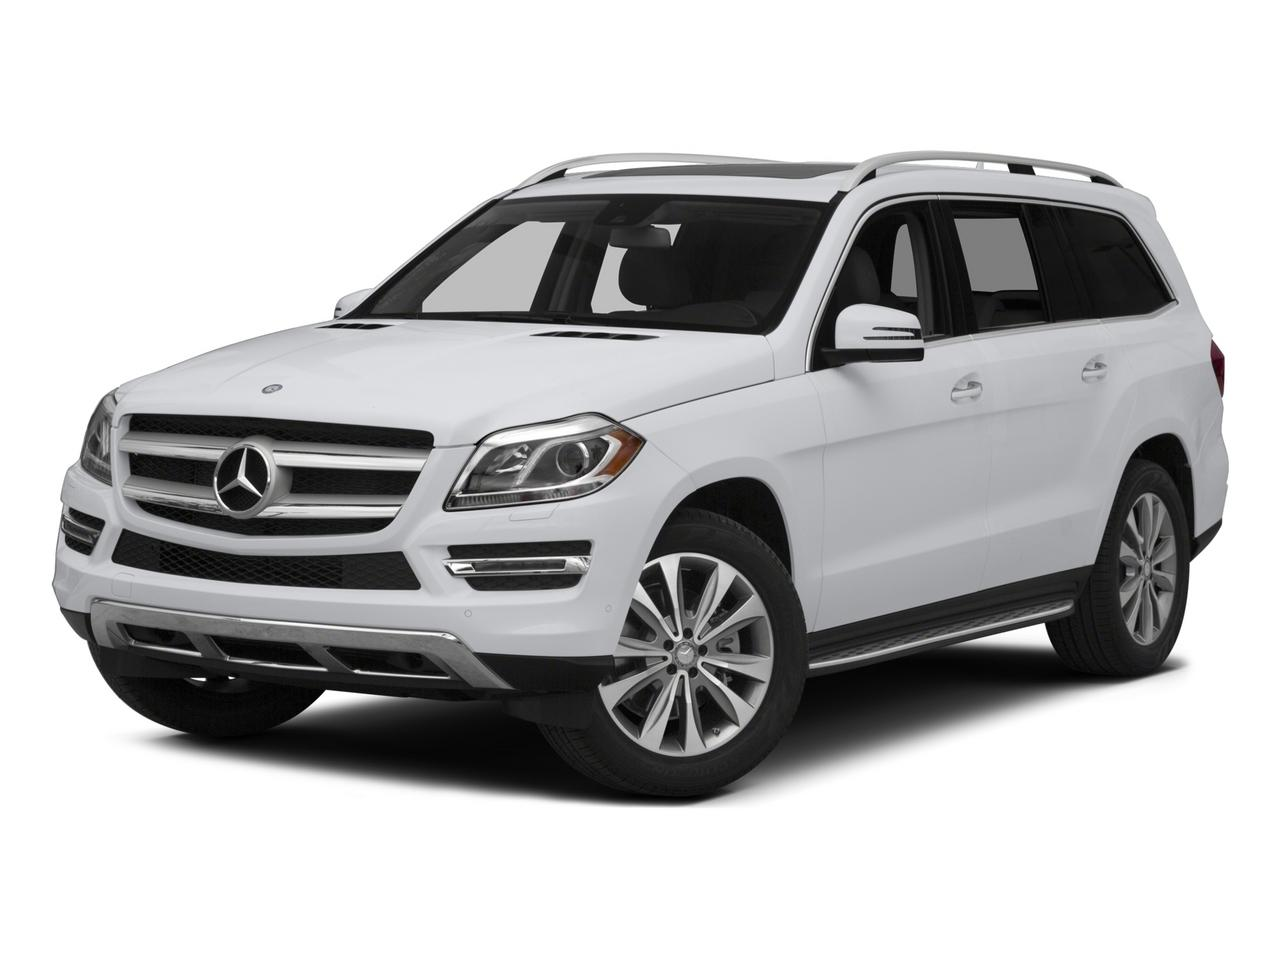 2015 Mercedes-Benz GL-Class Vehicle Photo in Cary, NC 27511